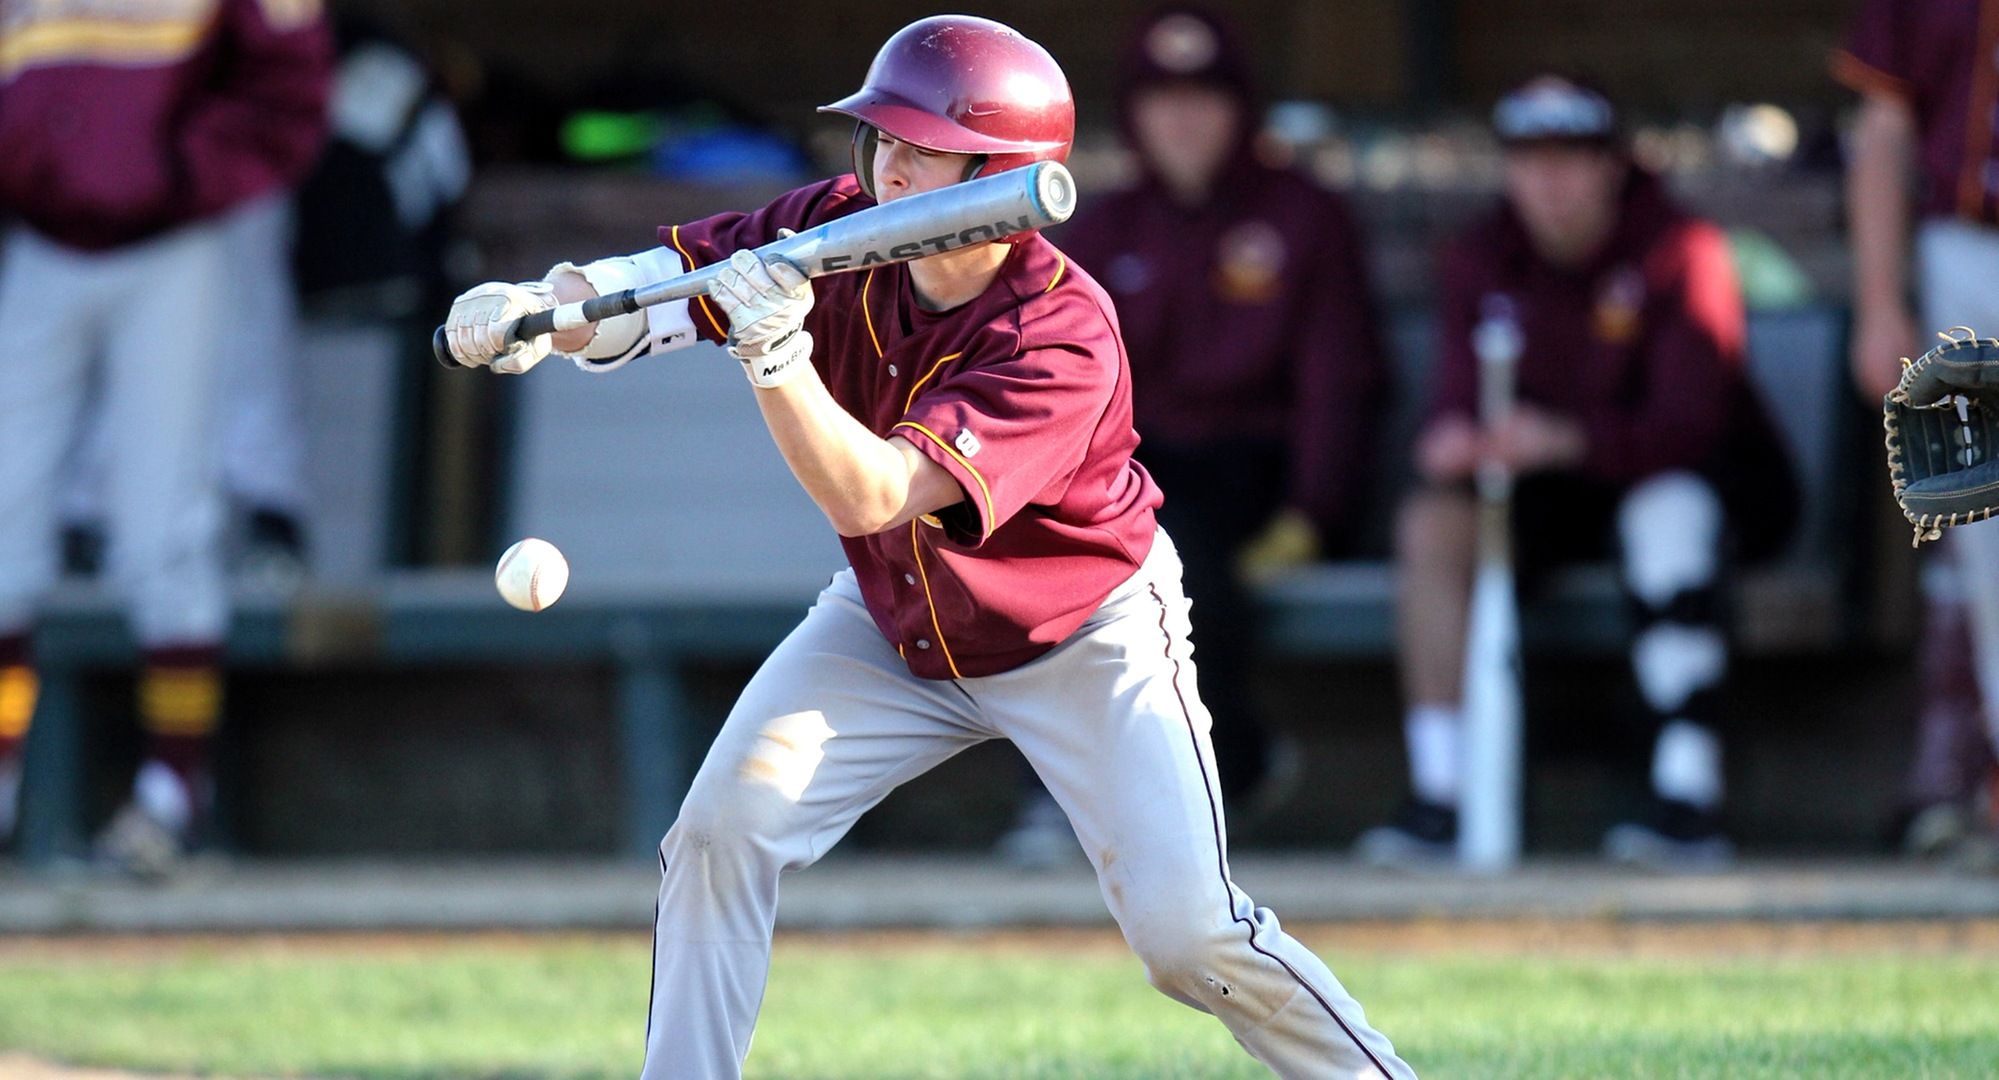 Sophomore Grant Toivonen lays down a bunt in the Cobbers' sweep at St. Olaf. Toivonen went 3-for-6 with two RBI and two runs scored on the day. (Photo courtesy of Rose Marie Peterson - St. Olaf Sports Info Dept.)